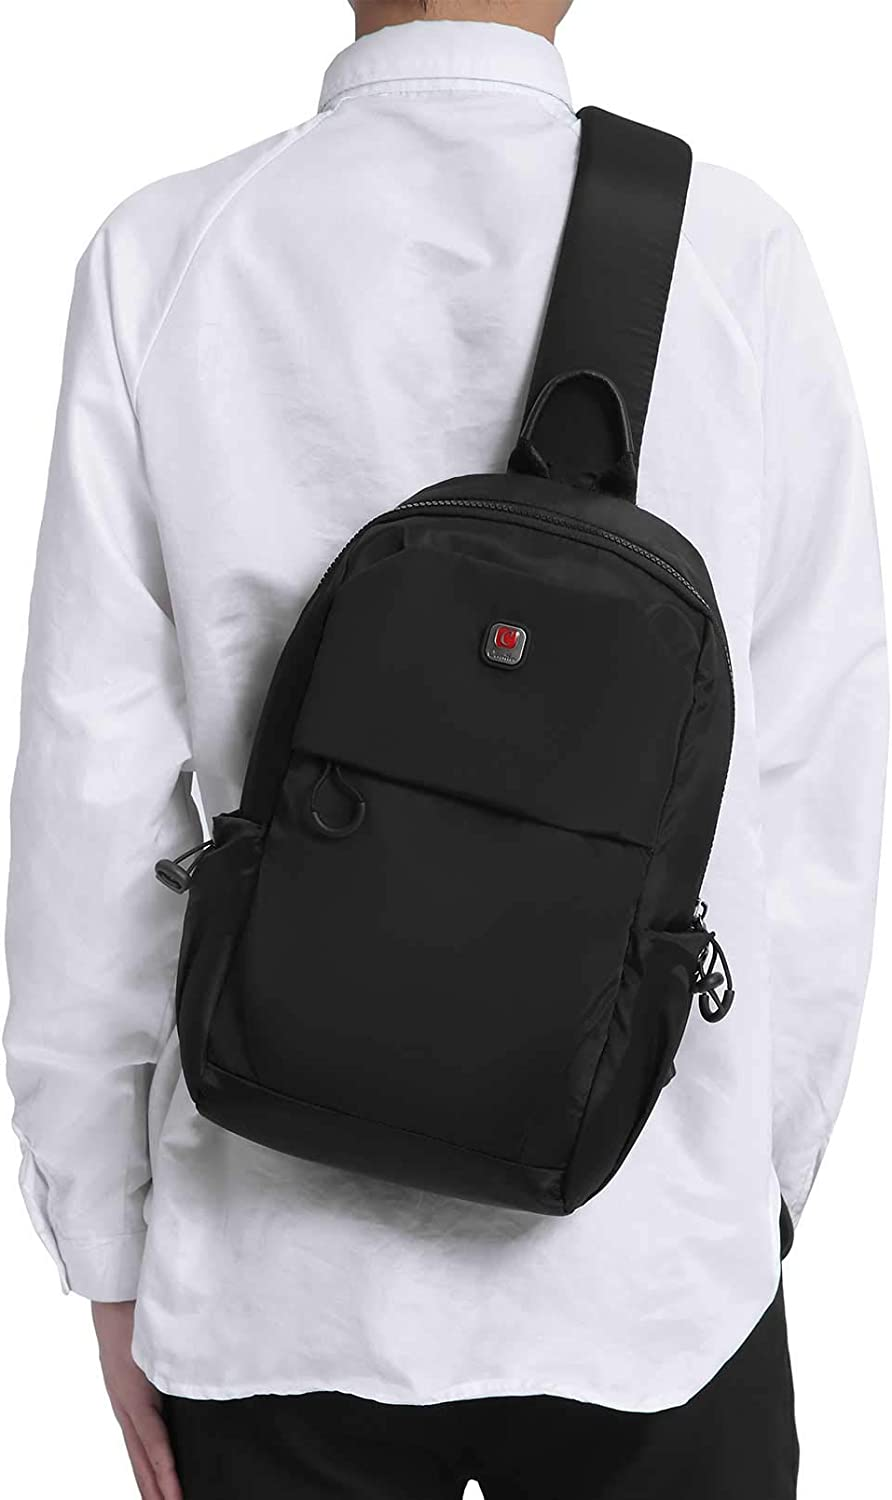 Max 53% OFF Men Small Sling Bag Crossbody Travel Max 68% OFF Backpack Chest Daypacks Pac